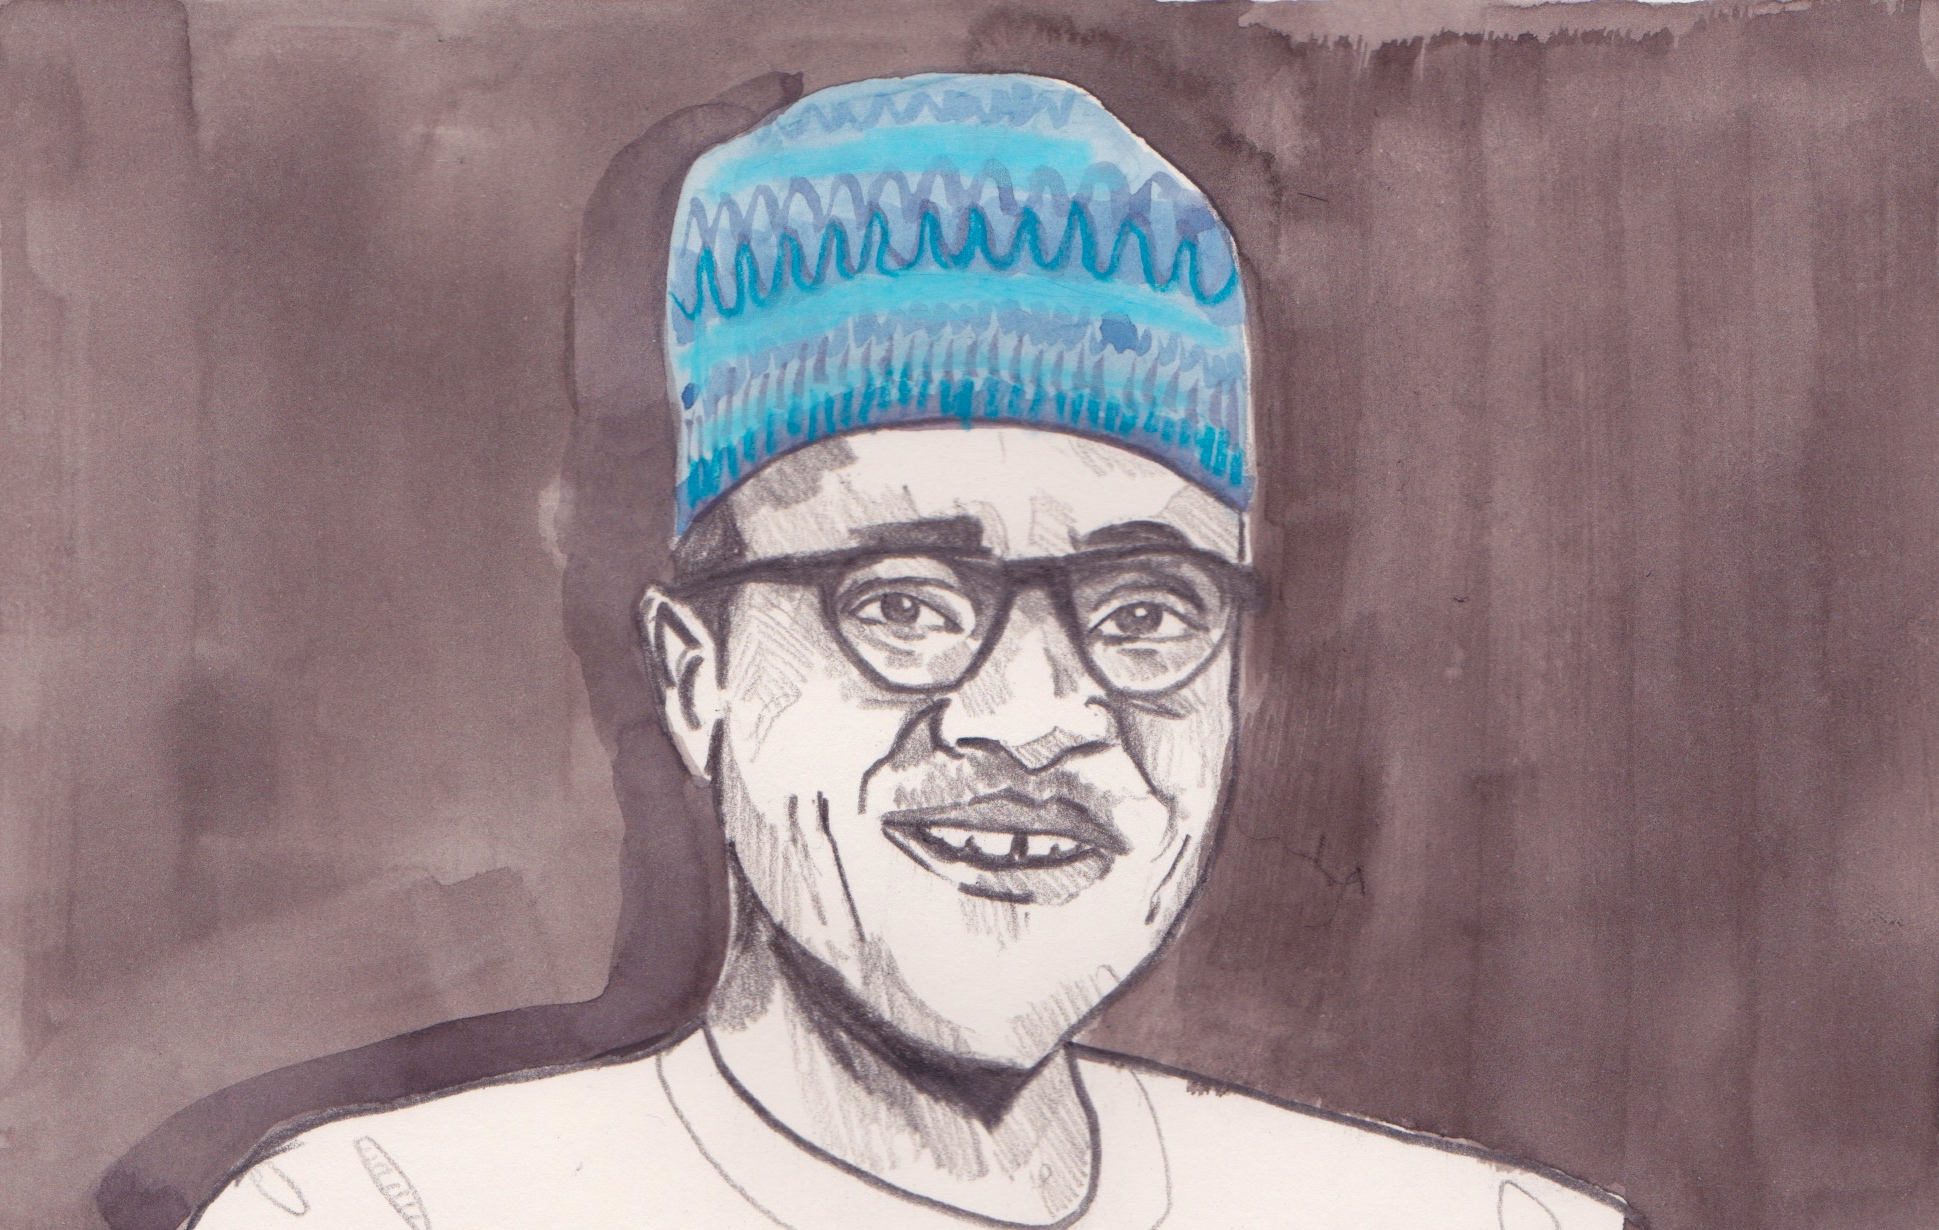 31/03/15Muhammadu Buhari, the opposition leader, has swept to victory in the Nigerian general election, a political earthquake that inflicted the first defeat on an incumbent in the history of Africa's biggest democracy. His All Progressives Congress (APC) party carried Nigeria's two biggest cities, Lagos and Kano, and chalked up heavy victories in its northern strongholds